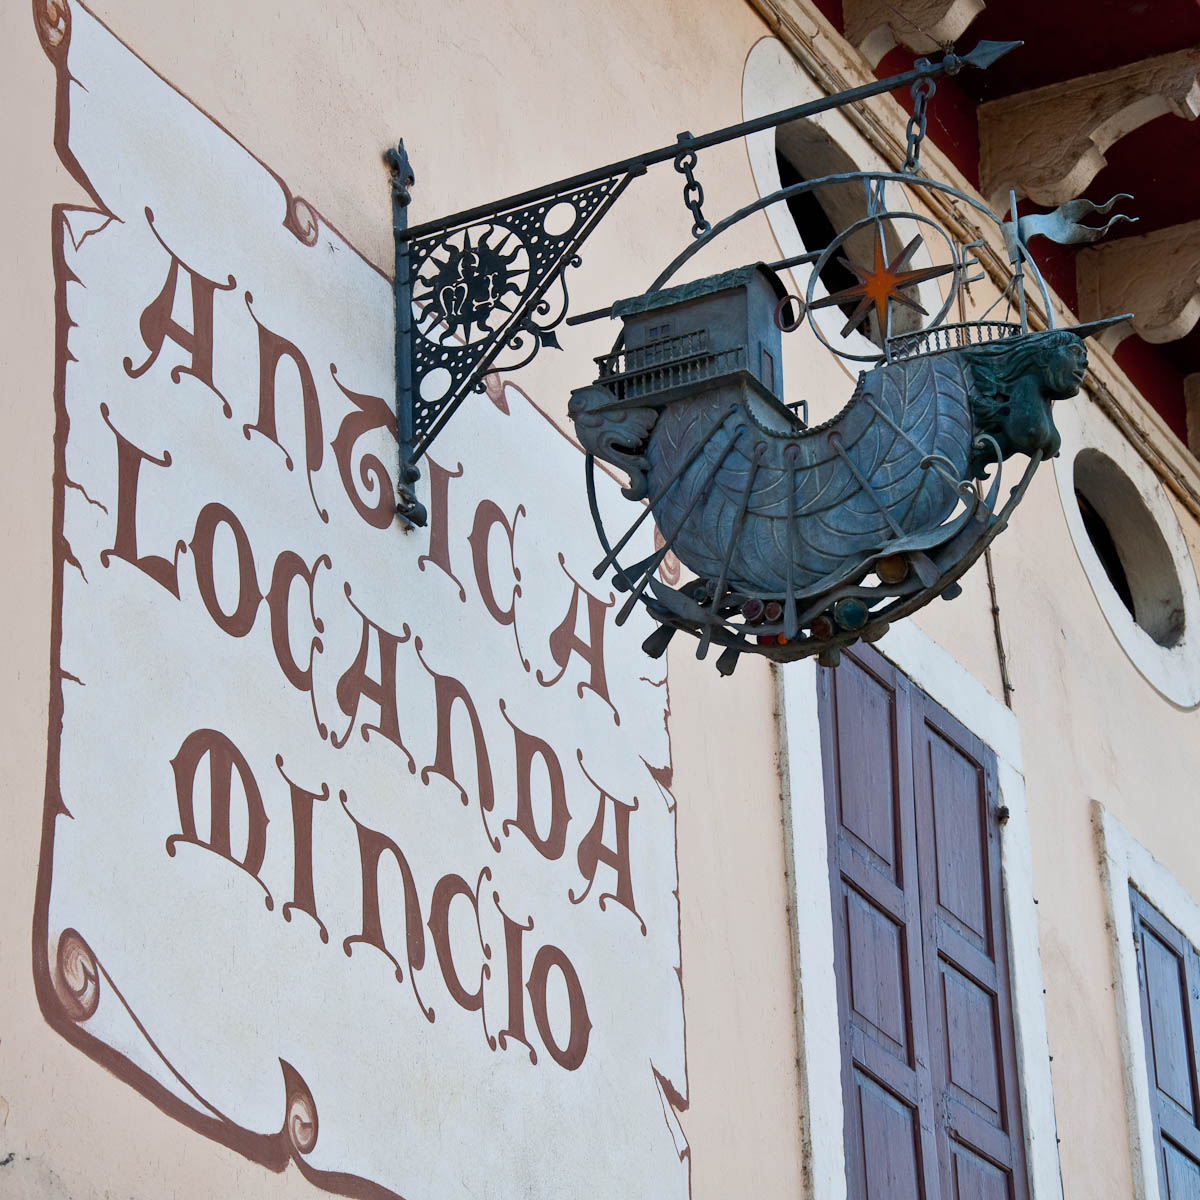 Restaurant sign, Borghetto, Veneto, Italy